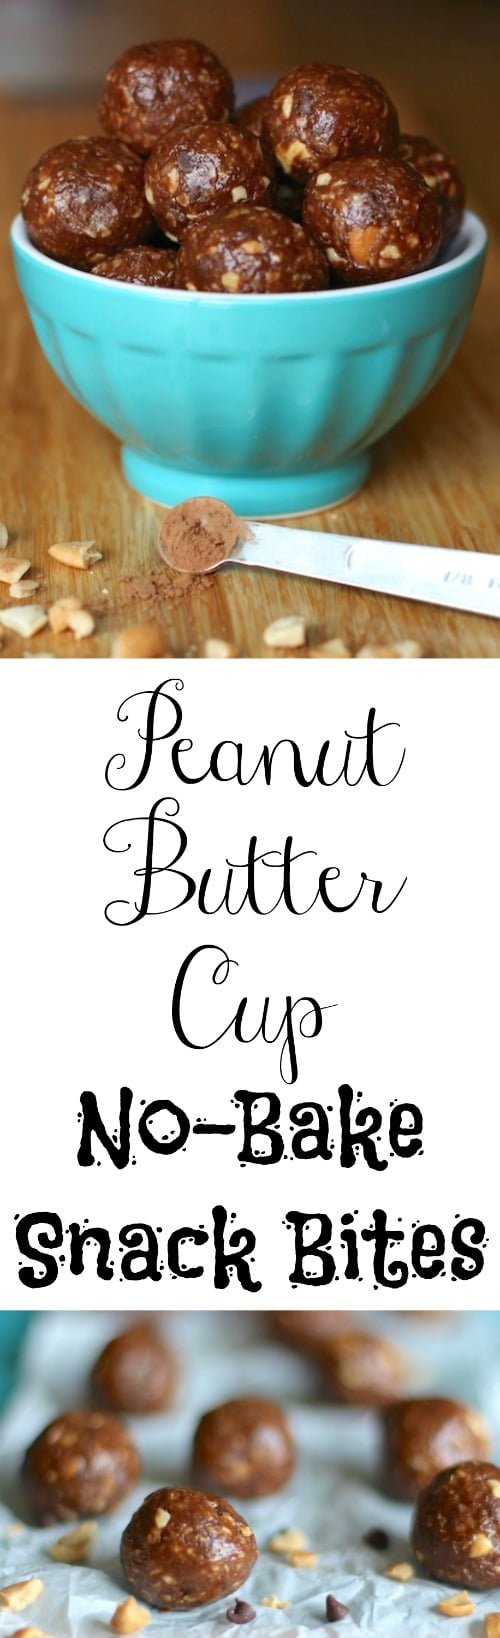 Peanut Butter Cup No-Bake Snack Bites Recipe {www.TwoHealthyKitchens.com}